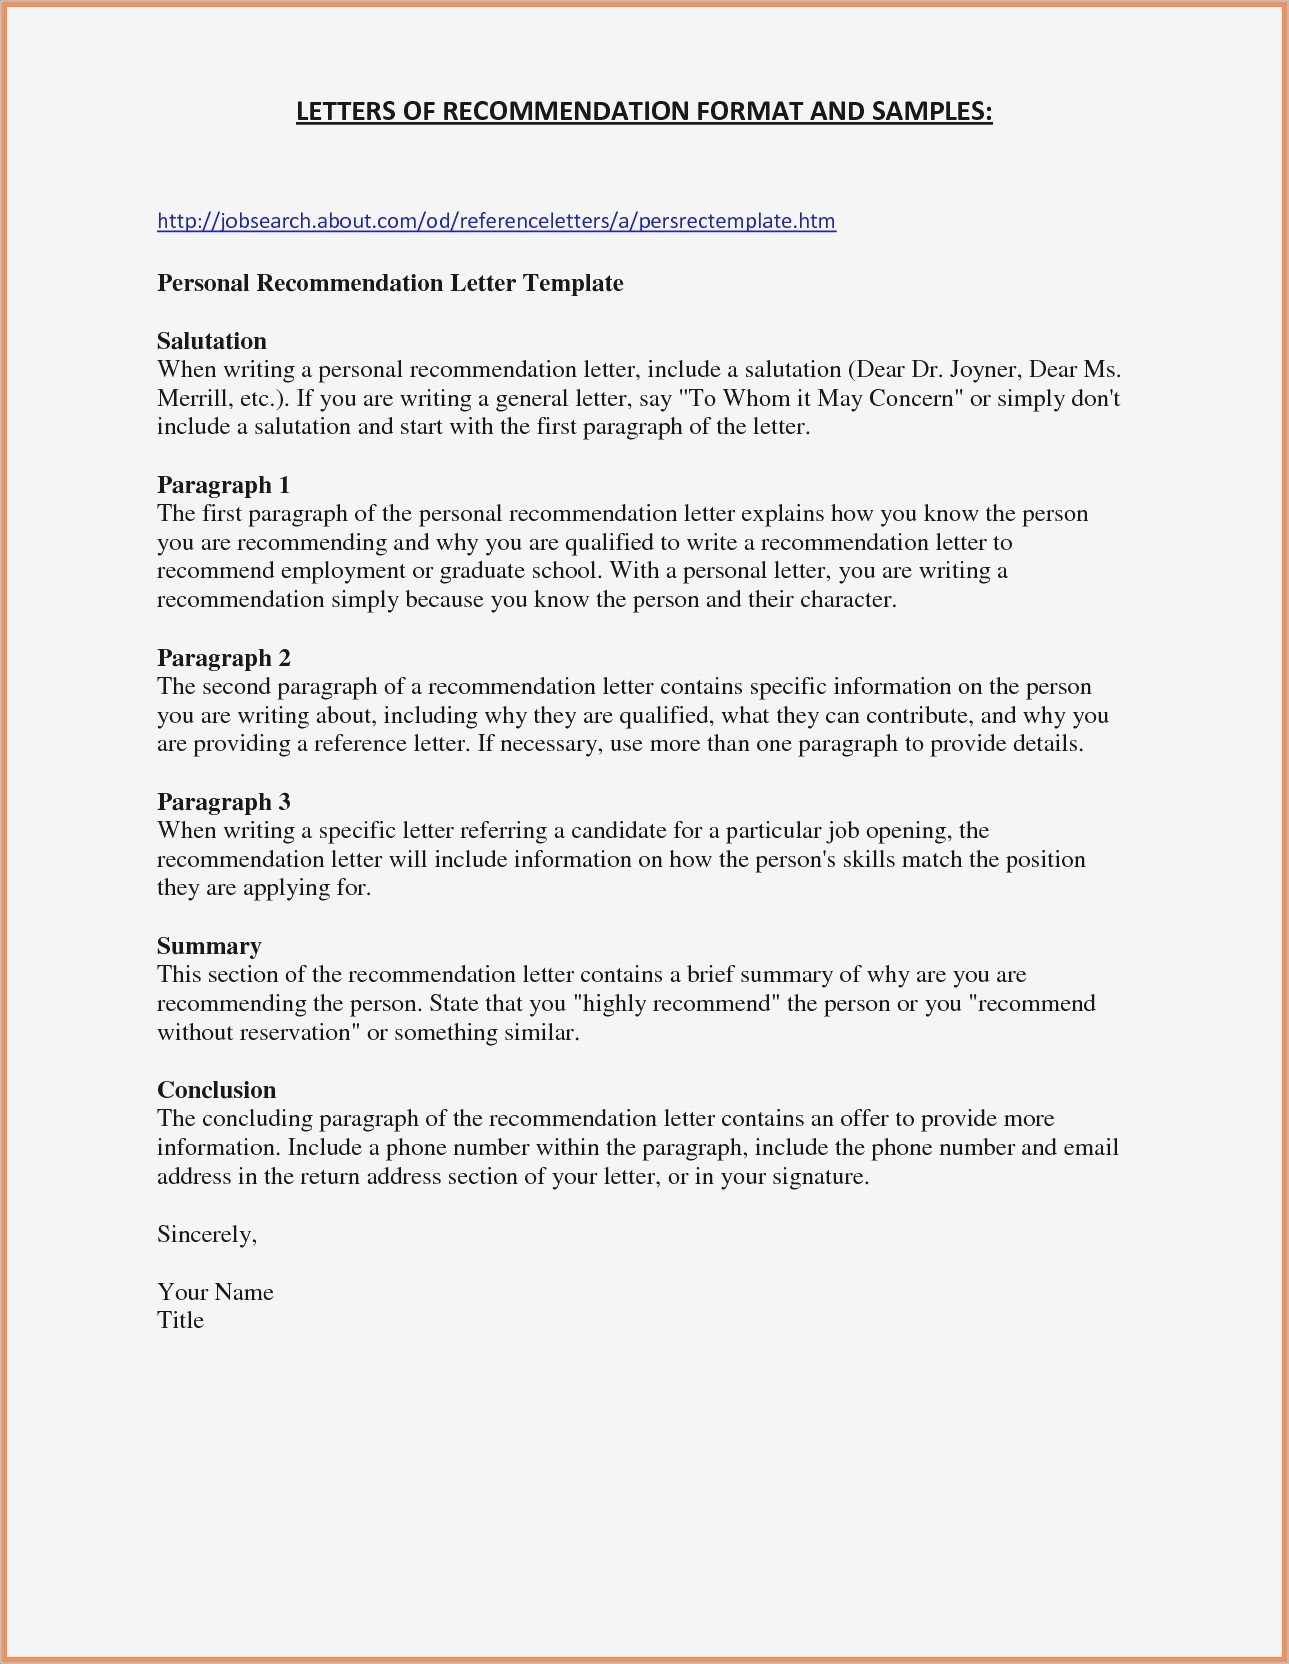 How to Write A Letter Of Recommendation Template - Job Letter Re Mendation Template Best Free Letter Re Mendation